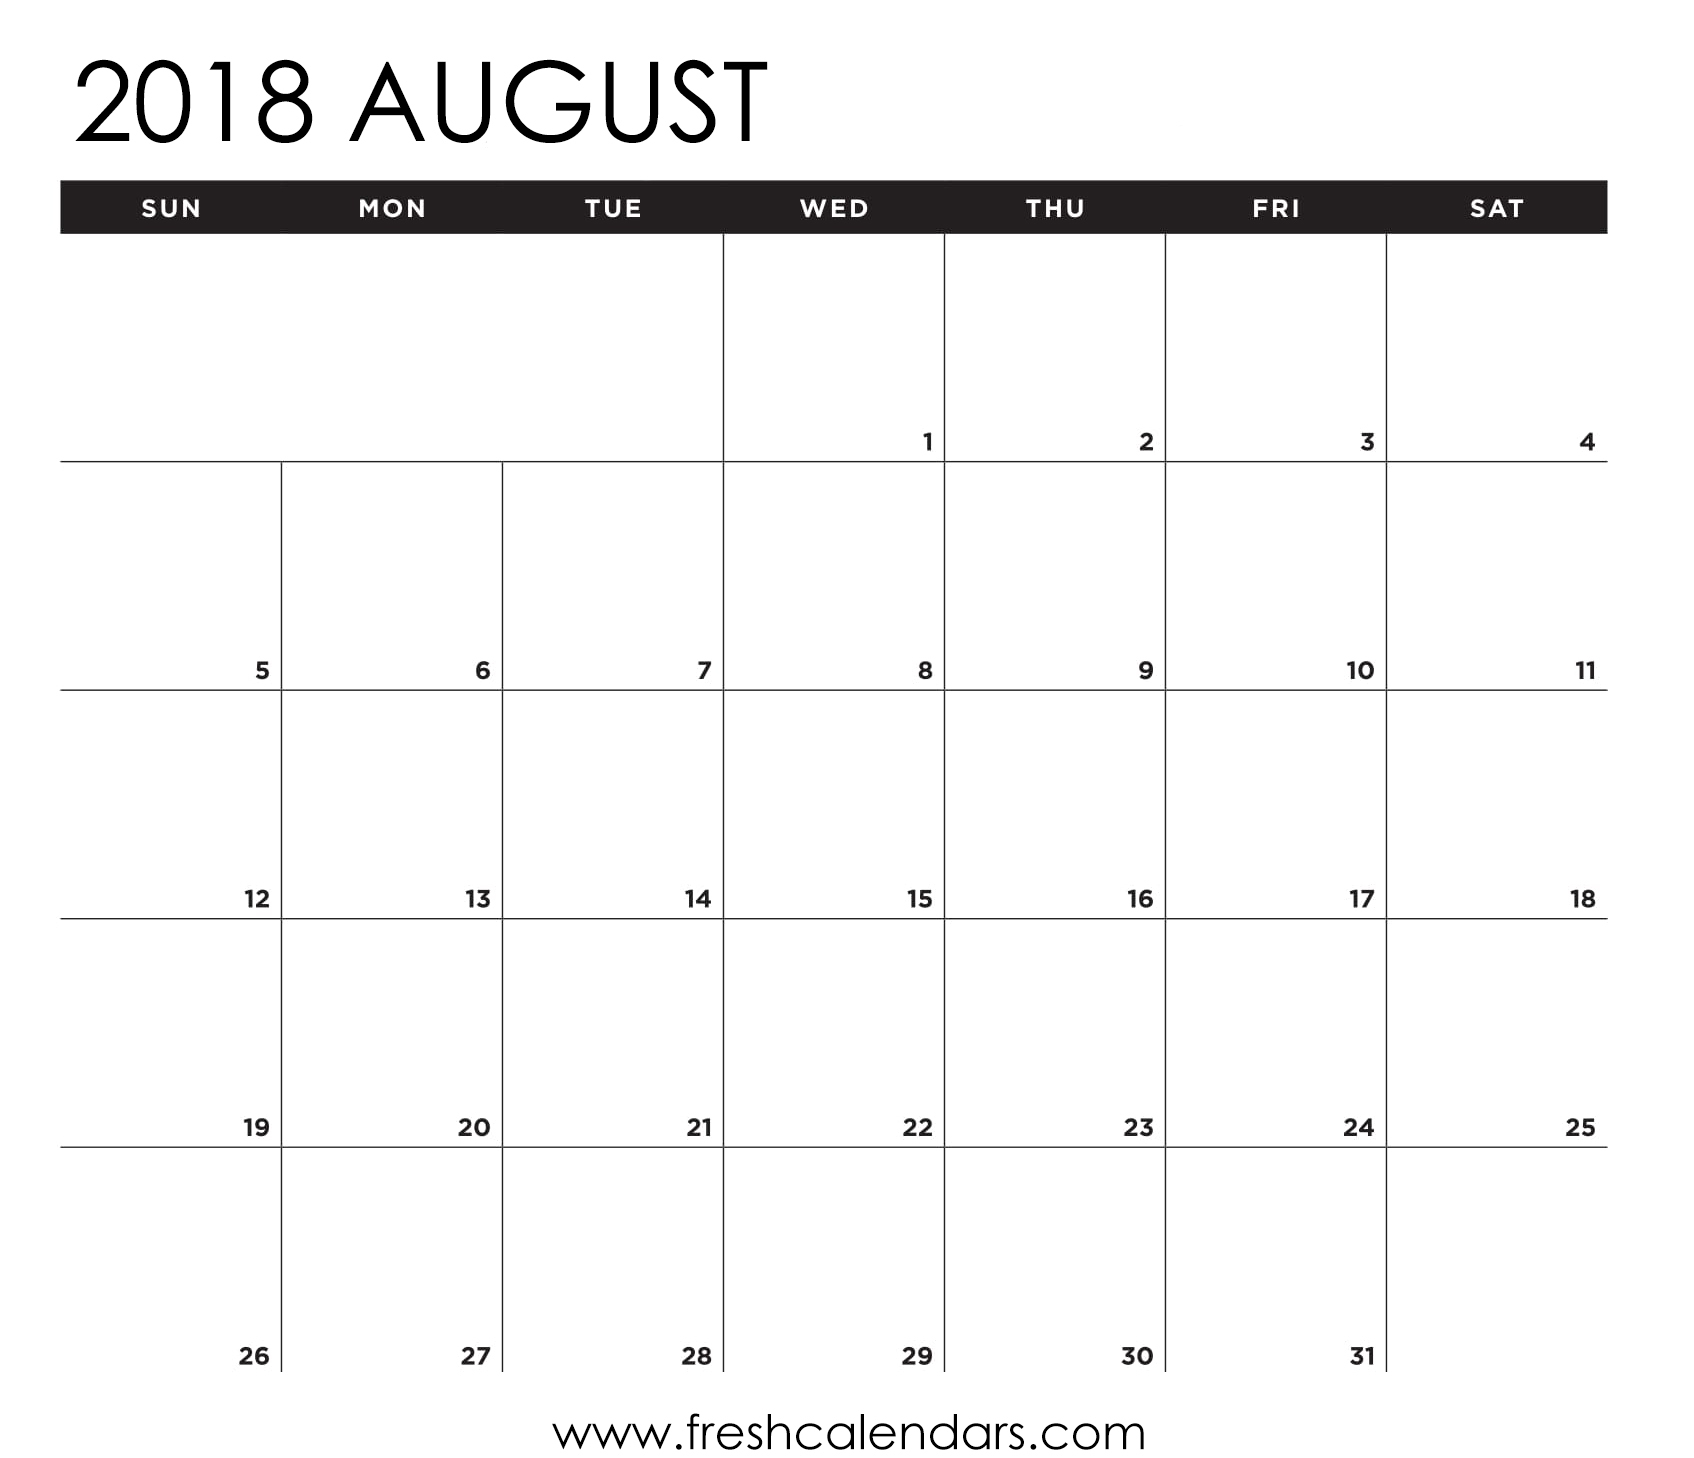 August 2018 Calendar Printable - Fresh Calendars for August Blank Calendar Template